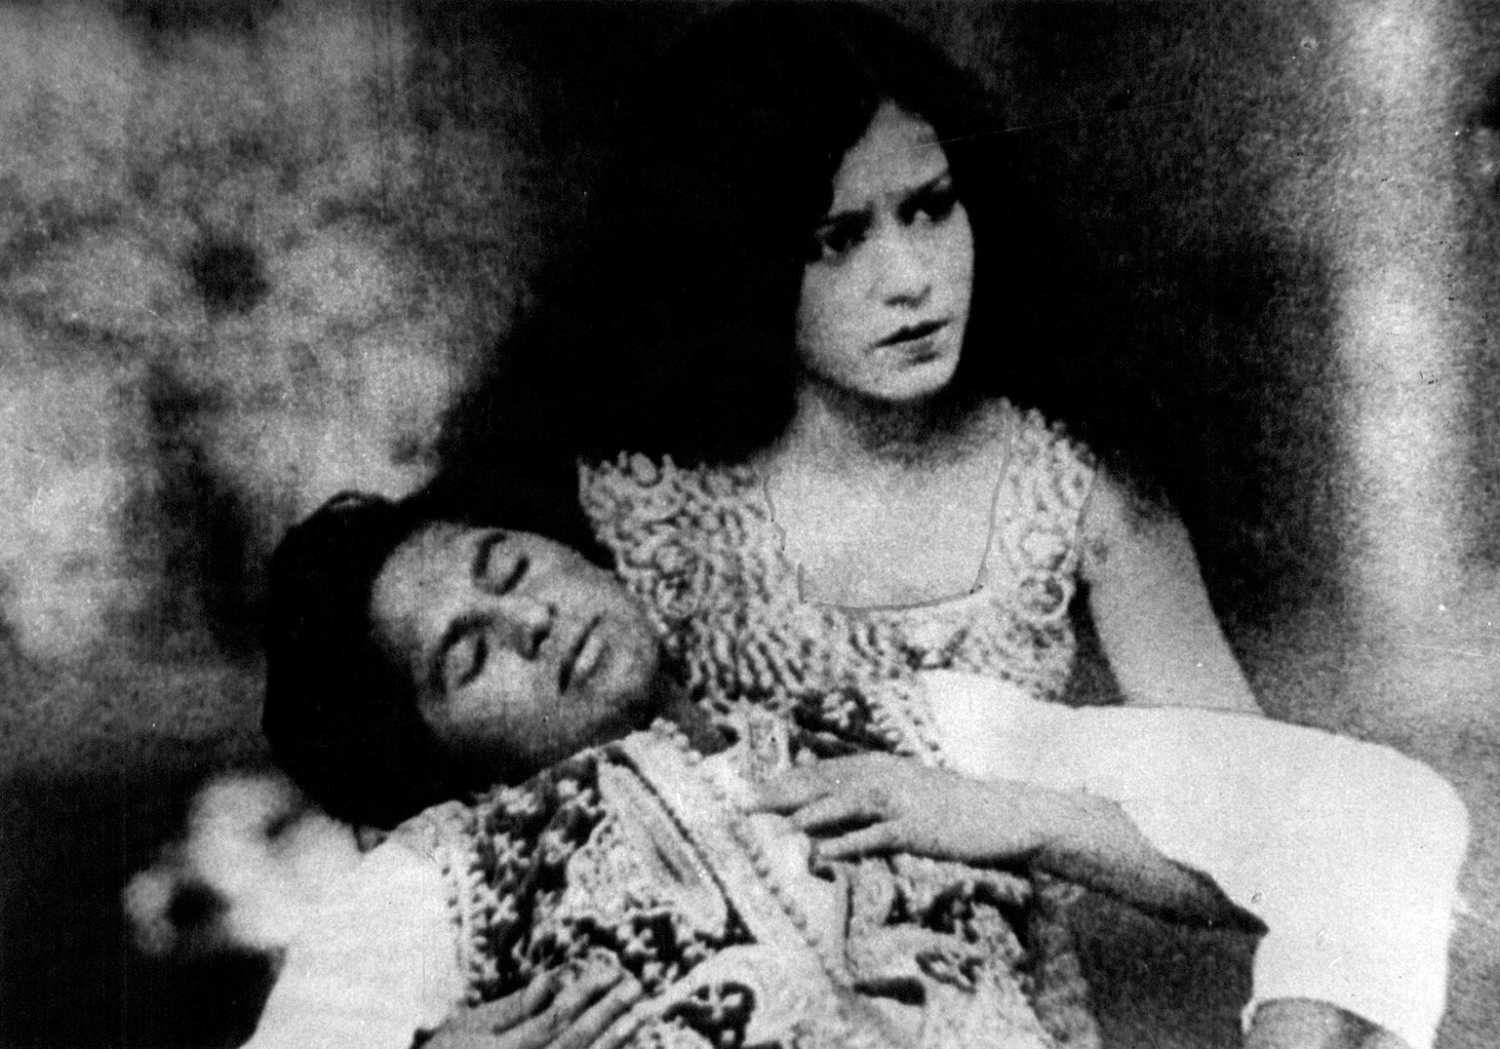 Pictures: Rare stills from India's first talkie, Alam Ara